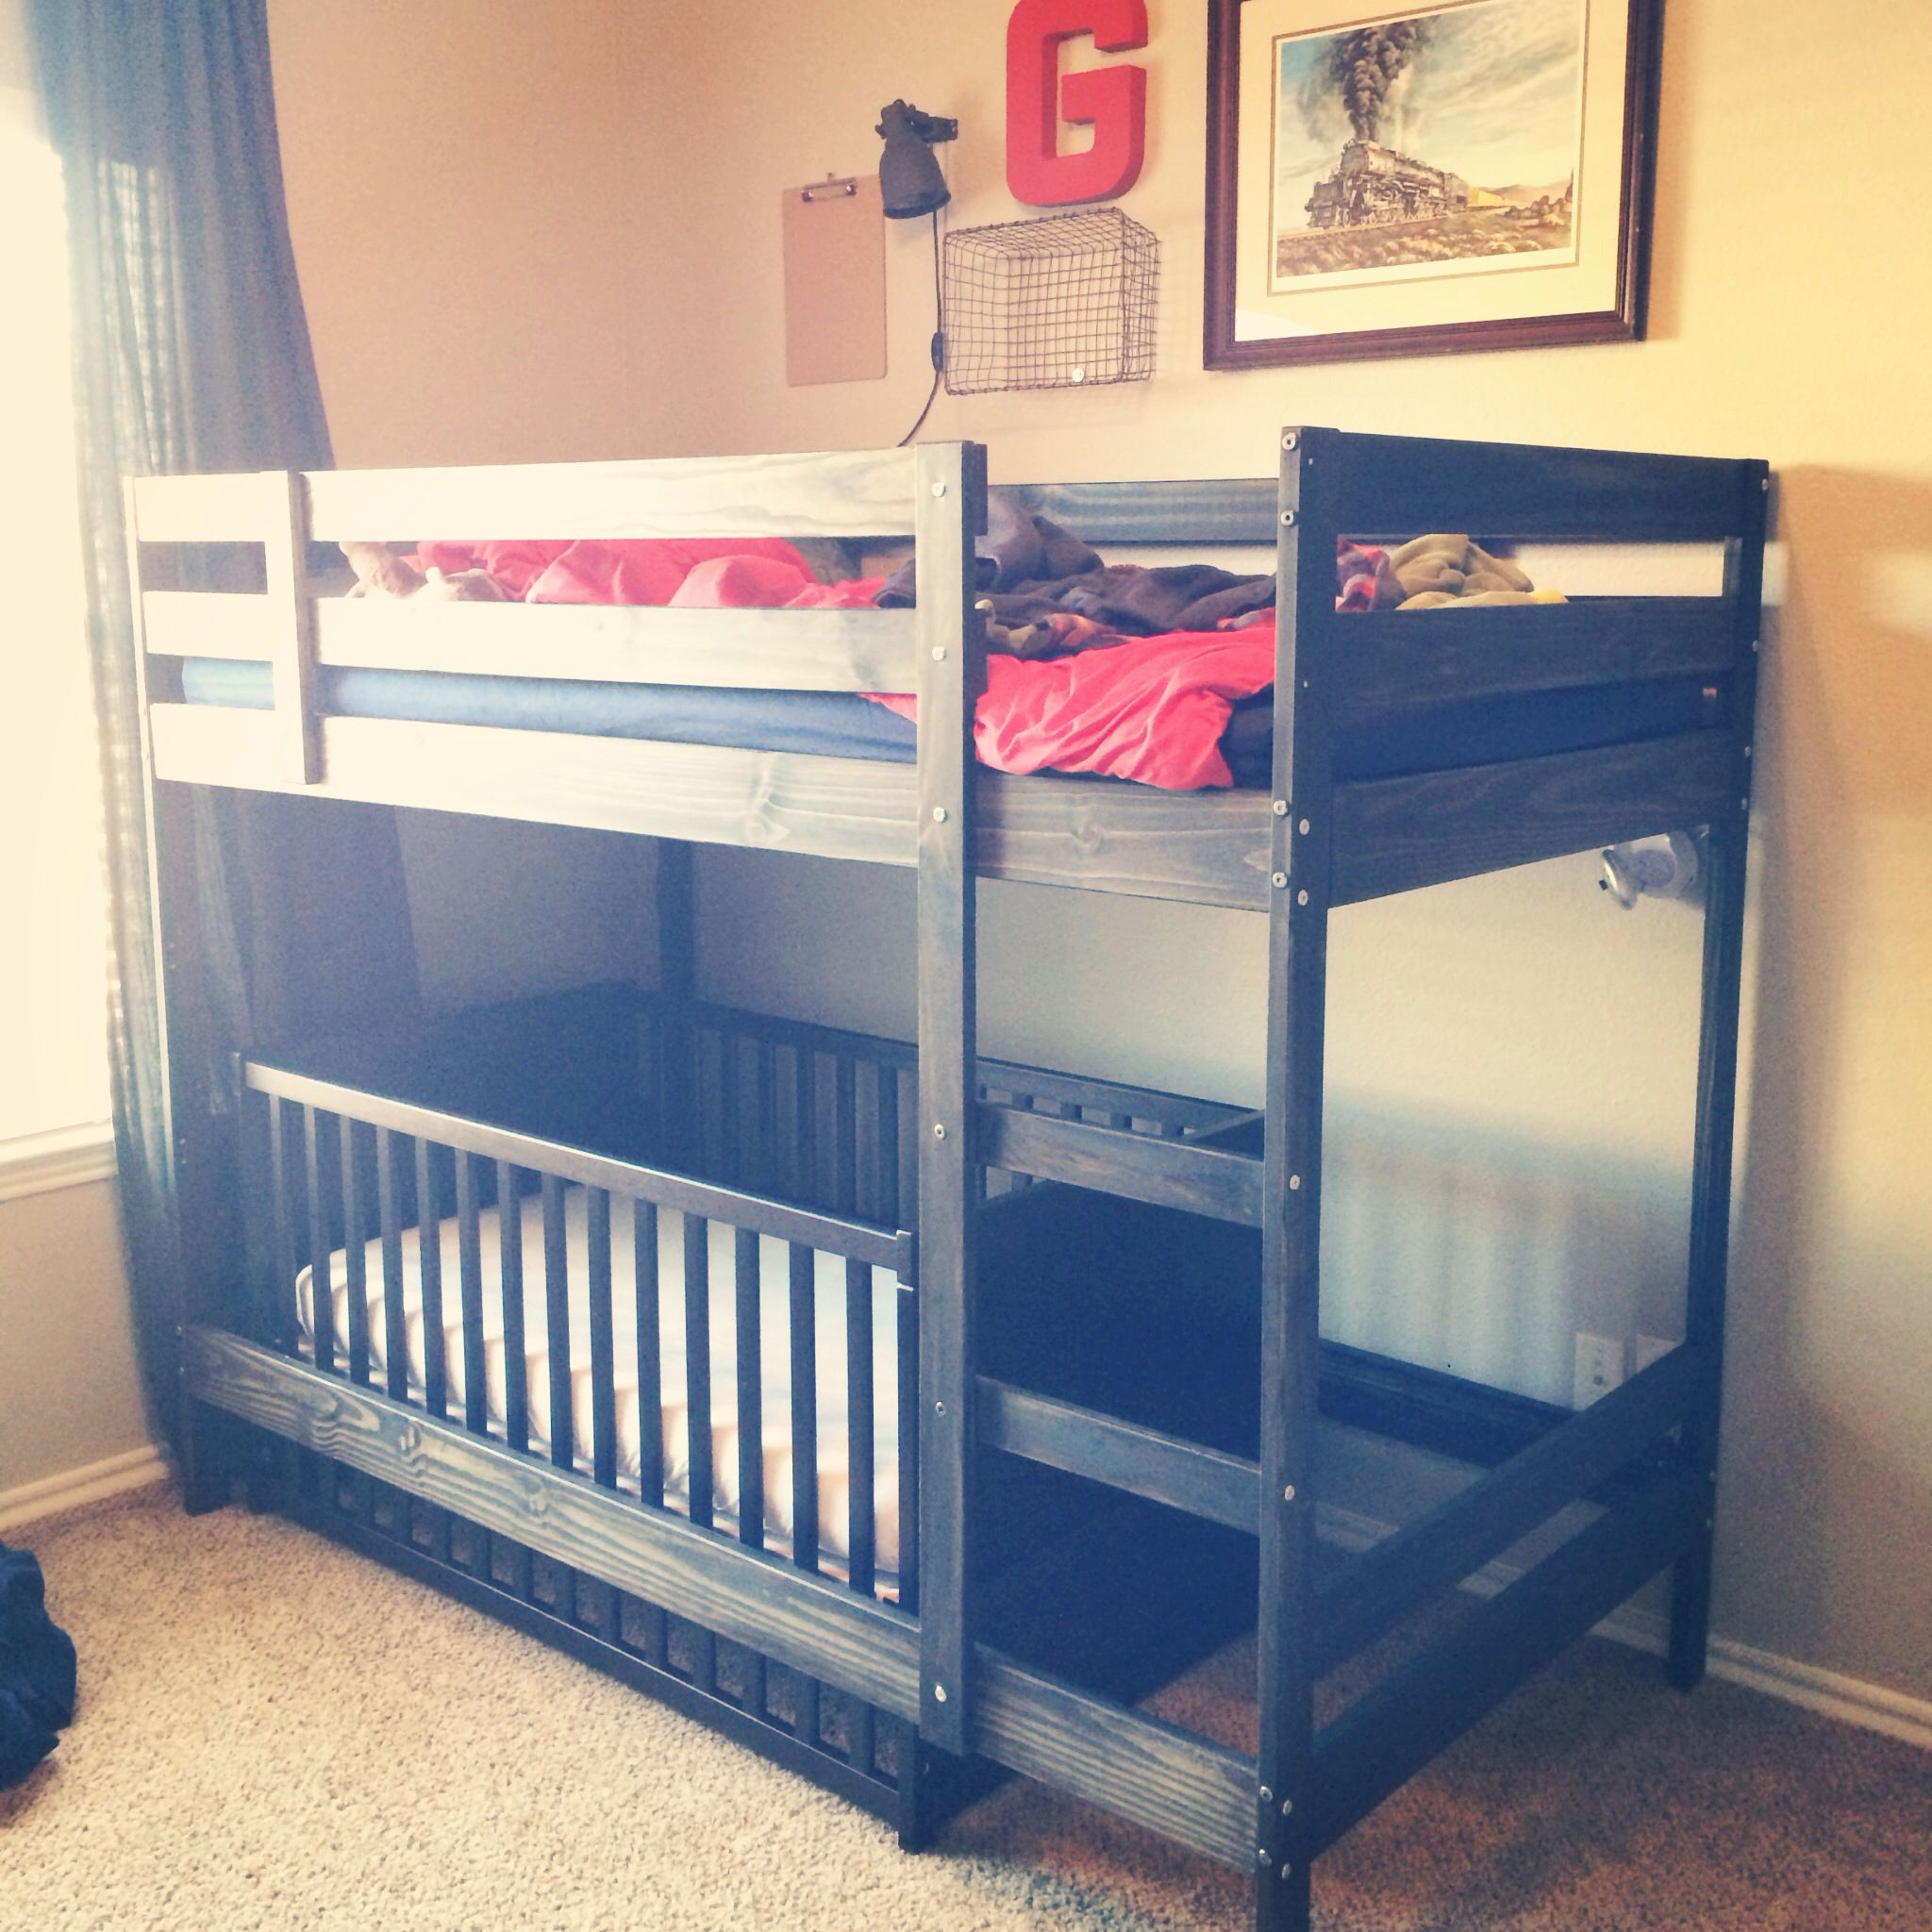 Bunk beds for boy kids - Boys Room Progress Shot Bunk Bed With Crib Underneath